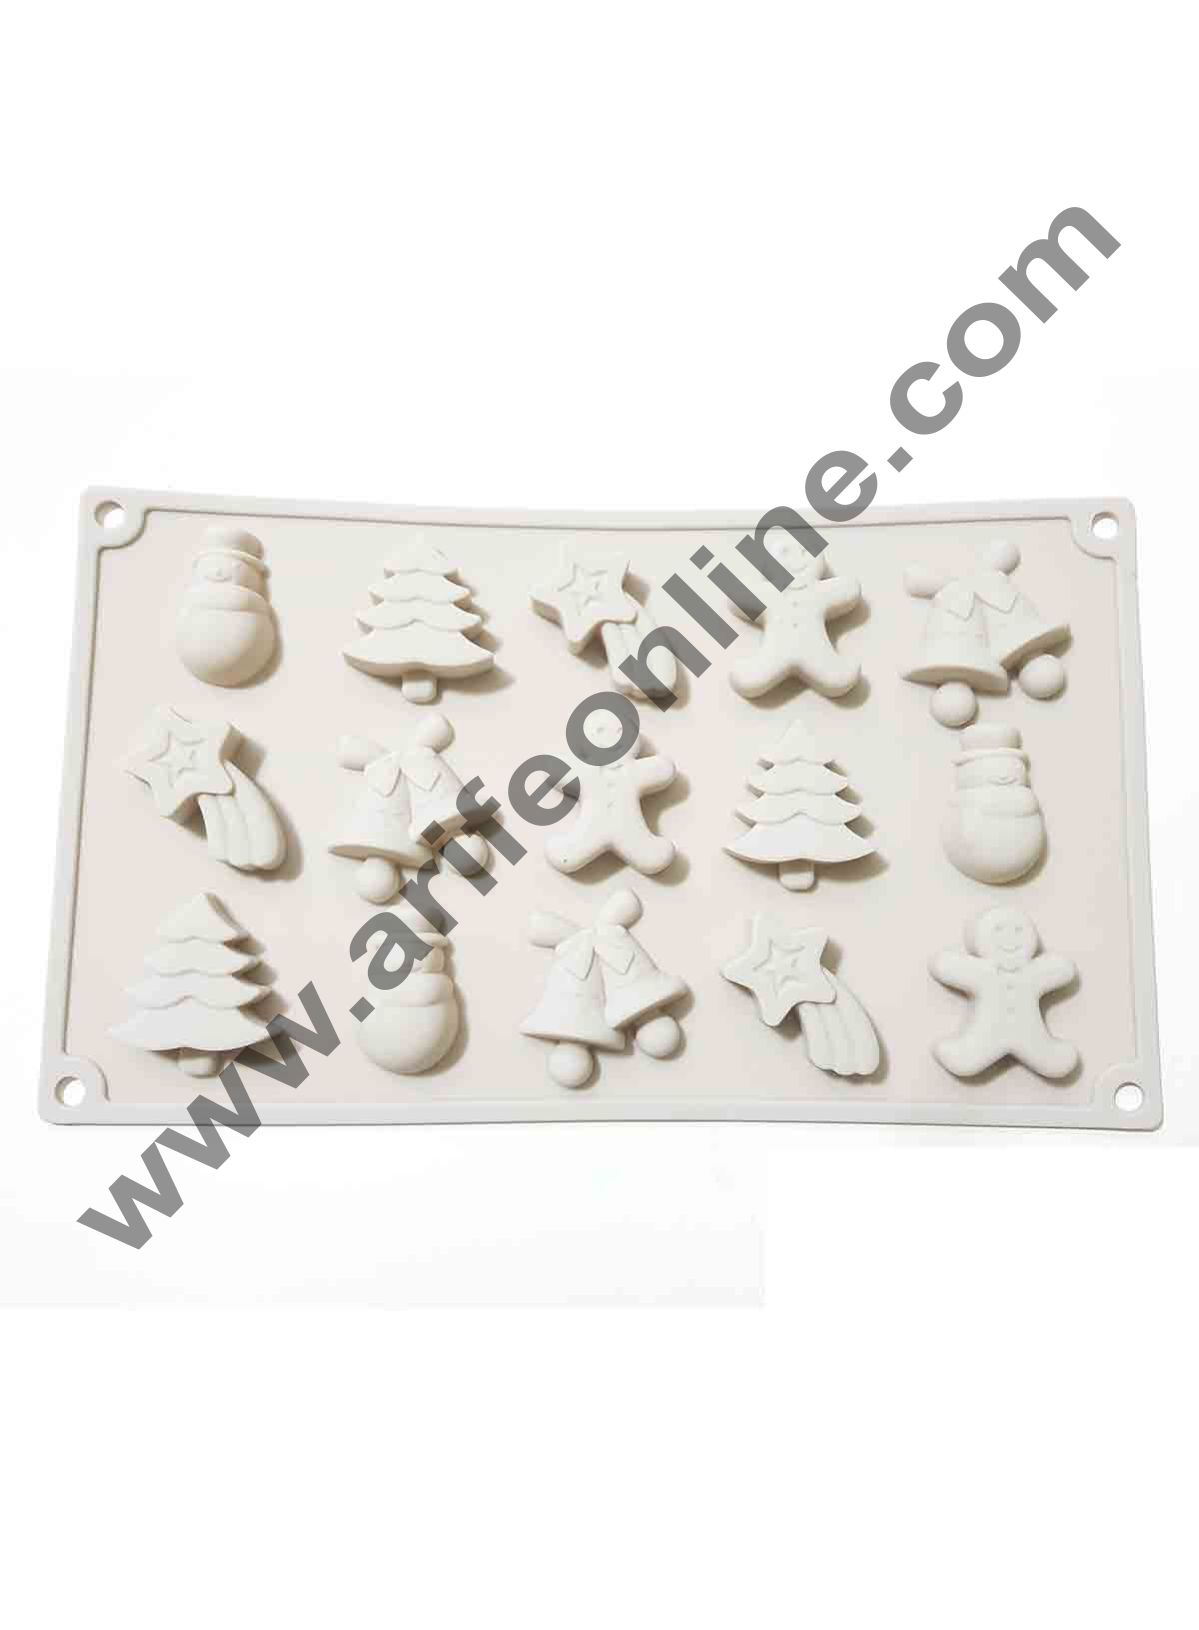 Cake Decor 15-Cavity Christmas Tree,Jingle Bell Chocolate Silicone Mould for Homemade Soap, Cake, Cupcake, Pudding, Jelly, Bread,Soap Ice Cube Tray Mould Mold Shape Silicone Brown Chocolate Moulds